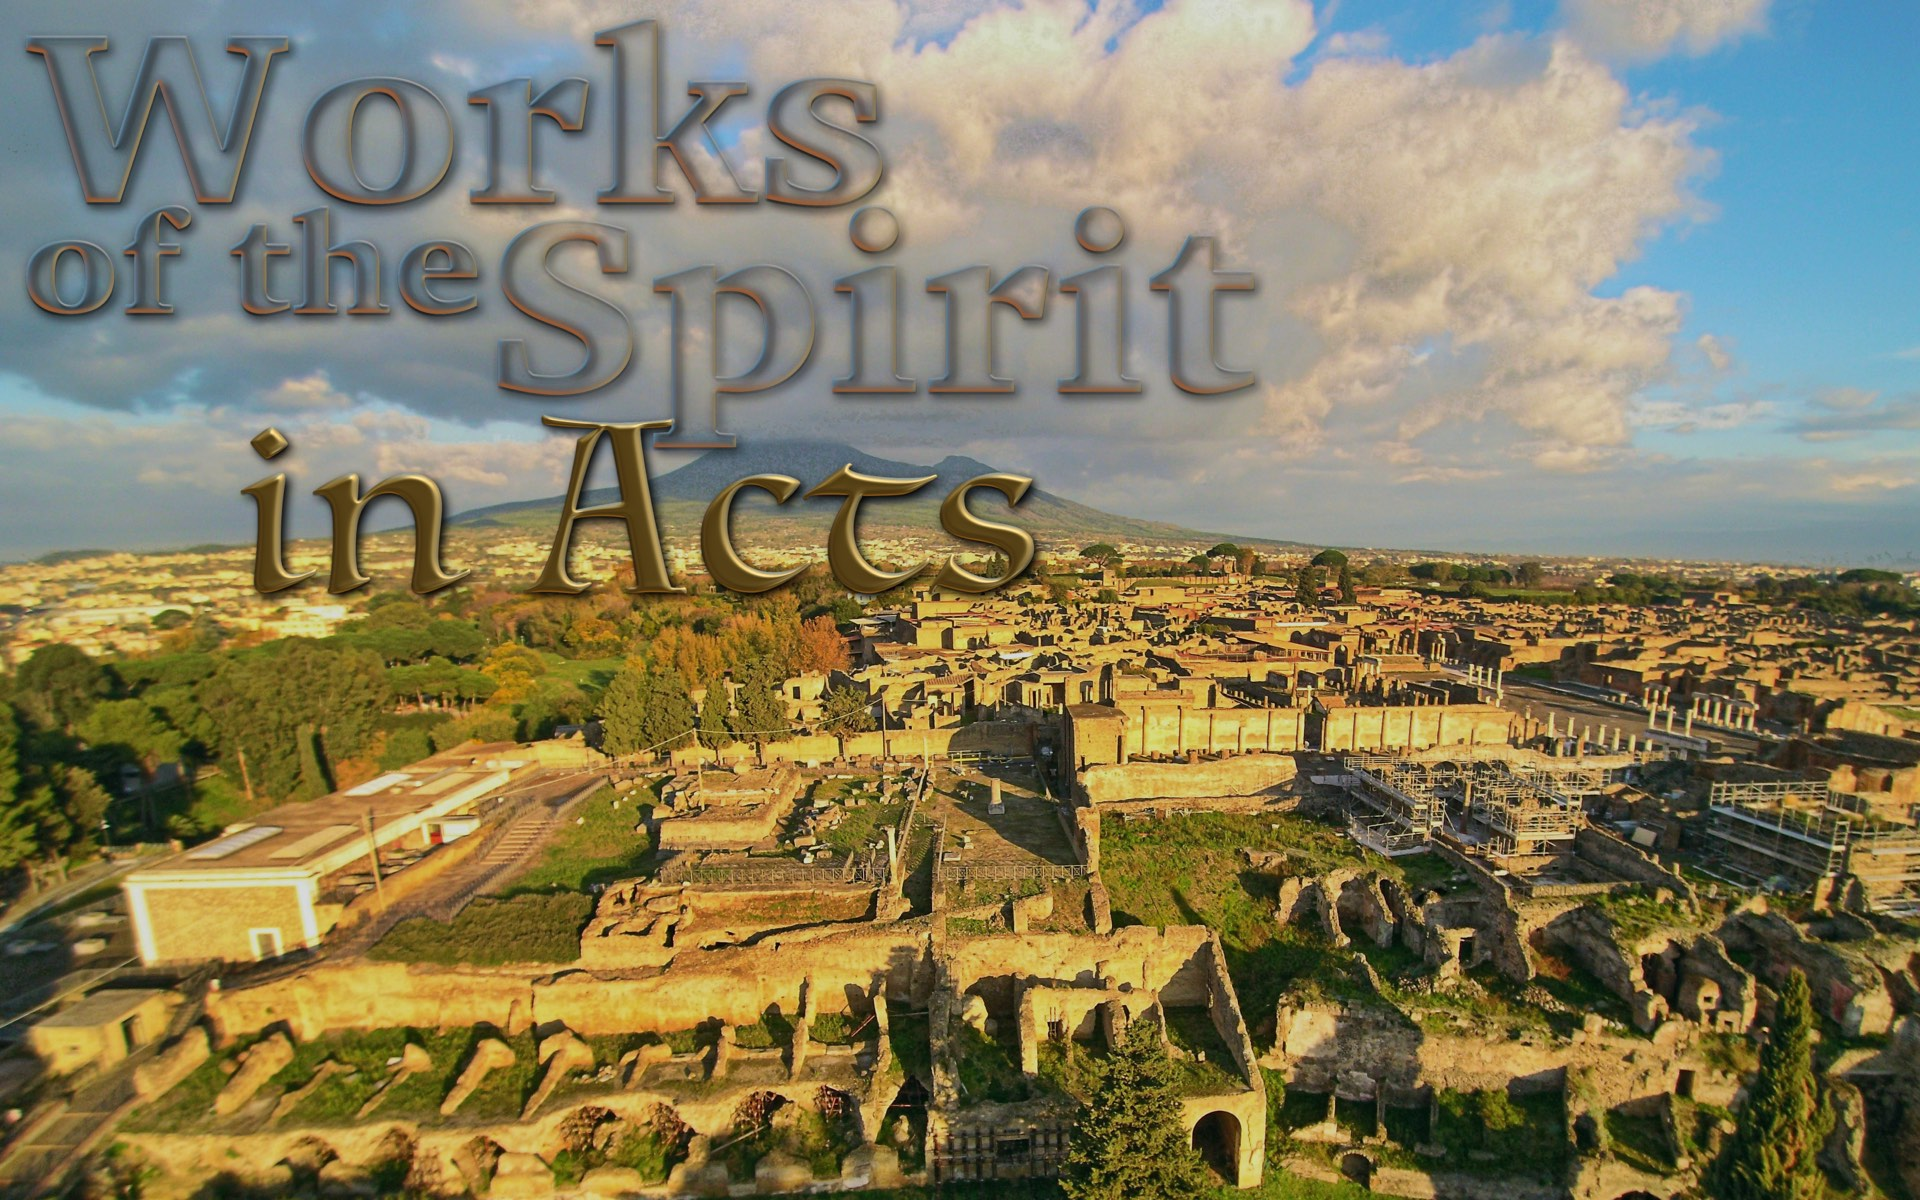 Works of the Spirit in the Book of Acts